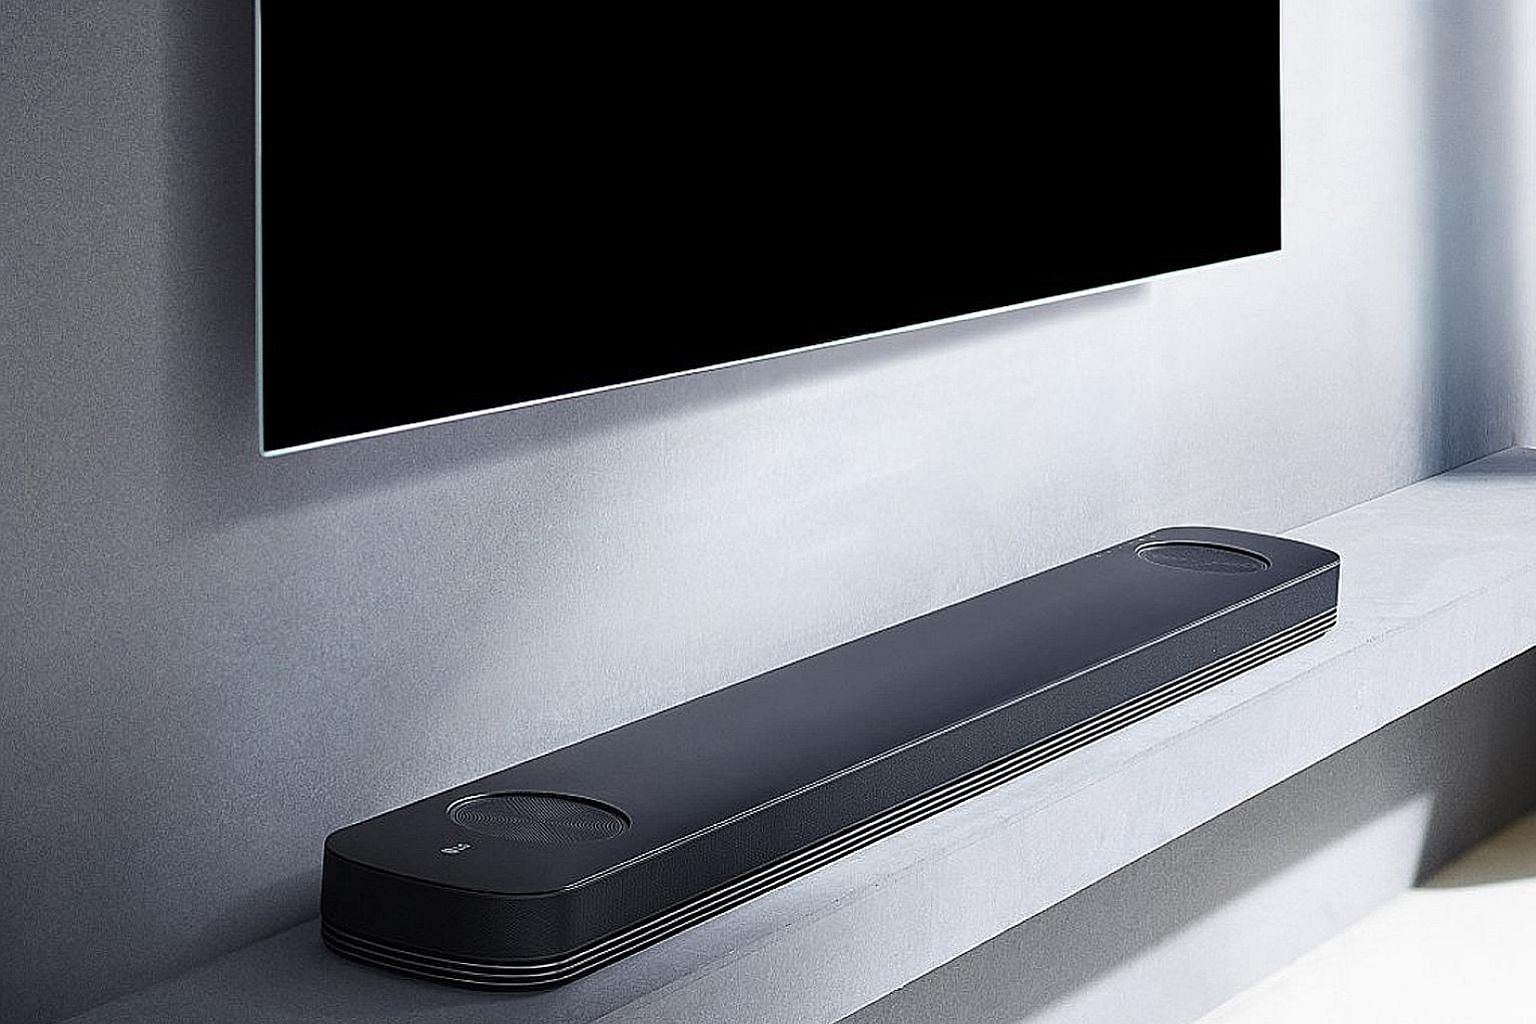 As a soundbar, LG's SJ9 does a competent job of replicating a 3D-sound environment with good surround depth and vertical height, and is able to give a convincing surround-sound atmosphere.